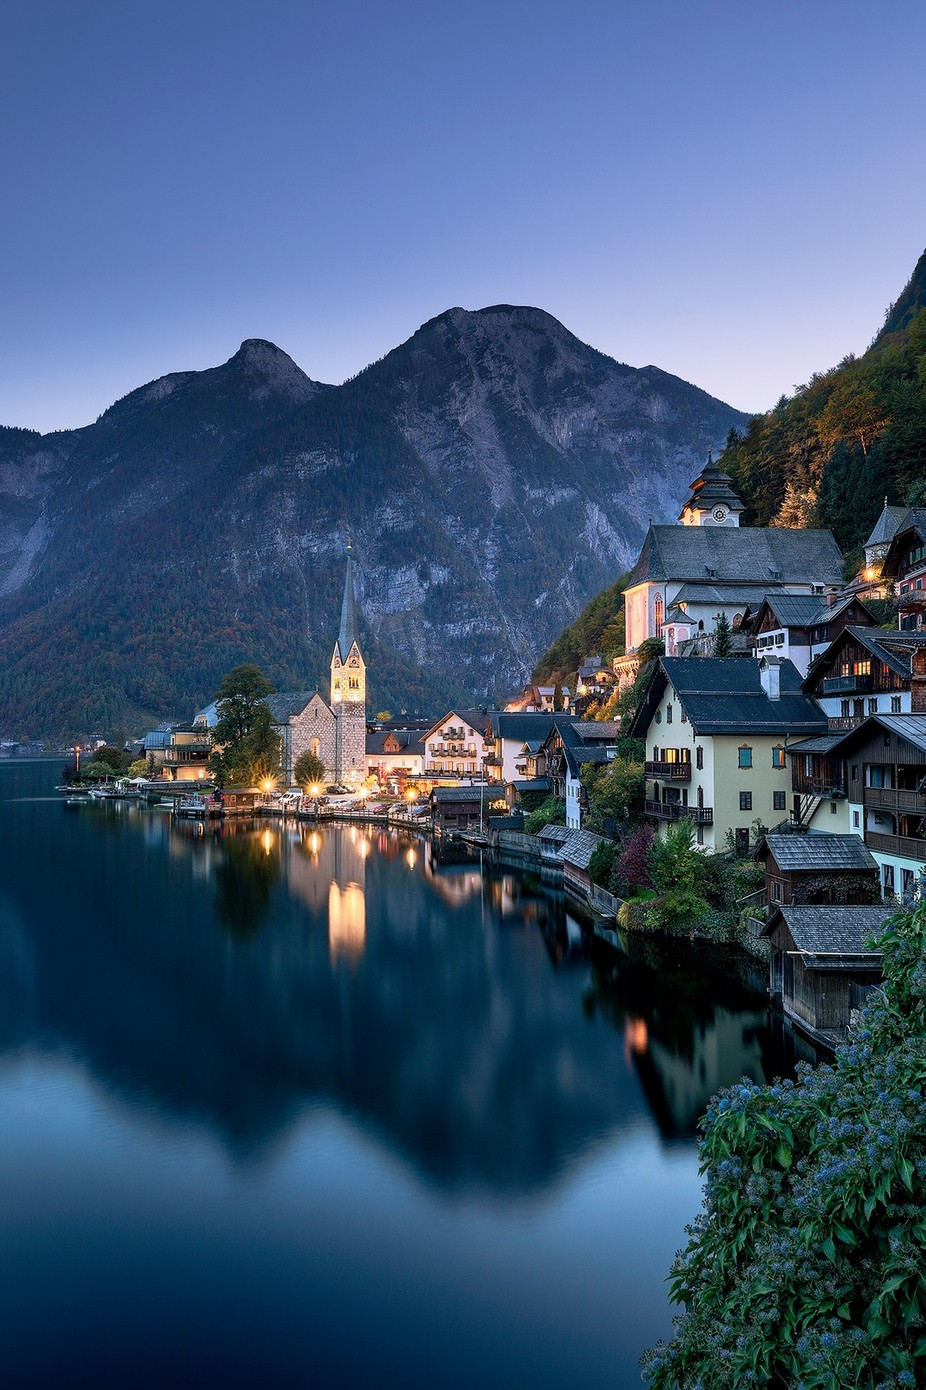 Hallstatt Blue by Mbeiter - Image Of The Month Photo Contest Vol 27